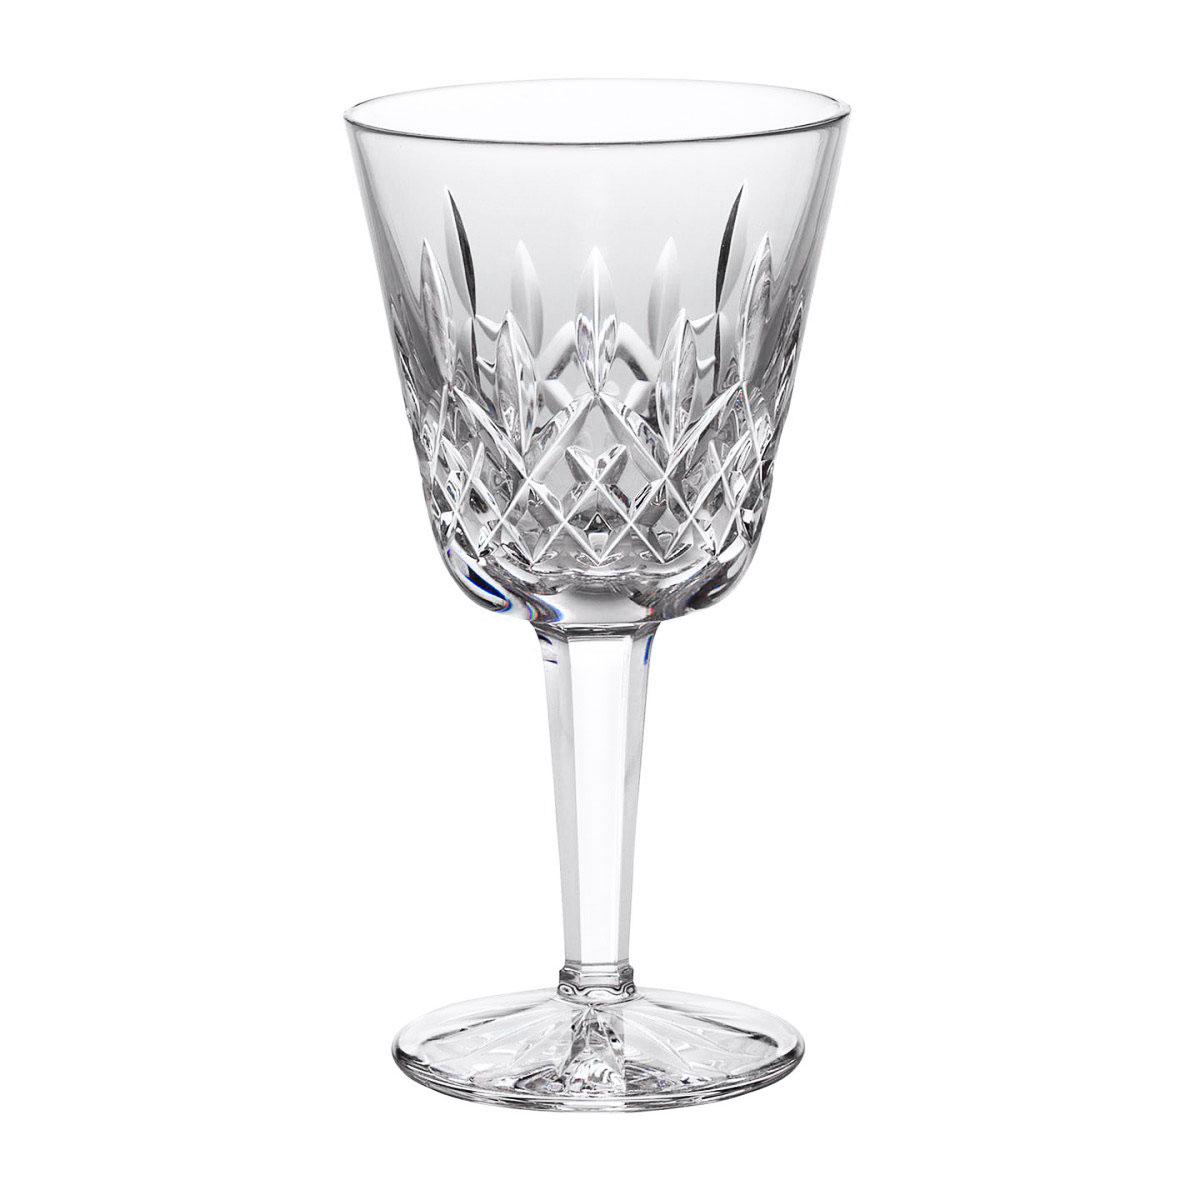 Waterford Crystal, Lismore Classic Claret, Crystal Red Wine, Single